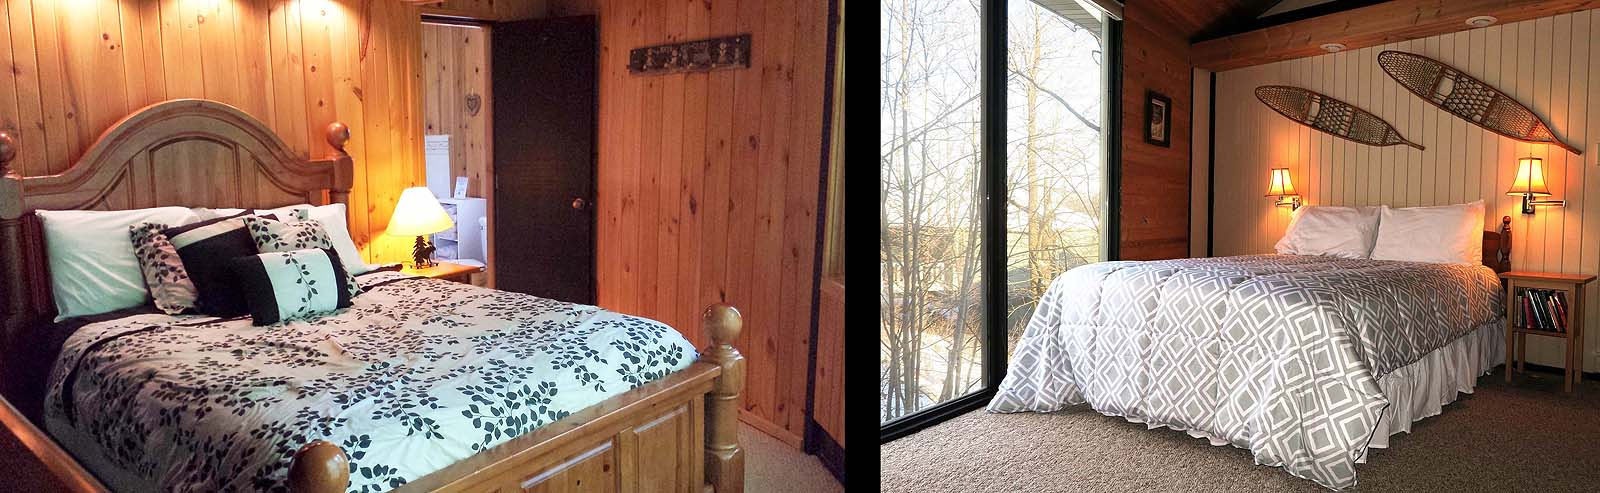 A view inside of two Mountain Villas showing a Master bedroom with bath, and a bedroom with a great view